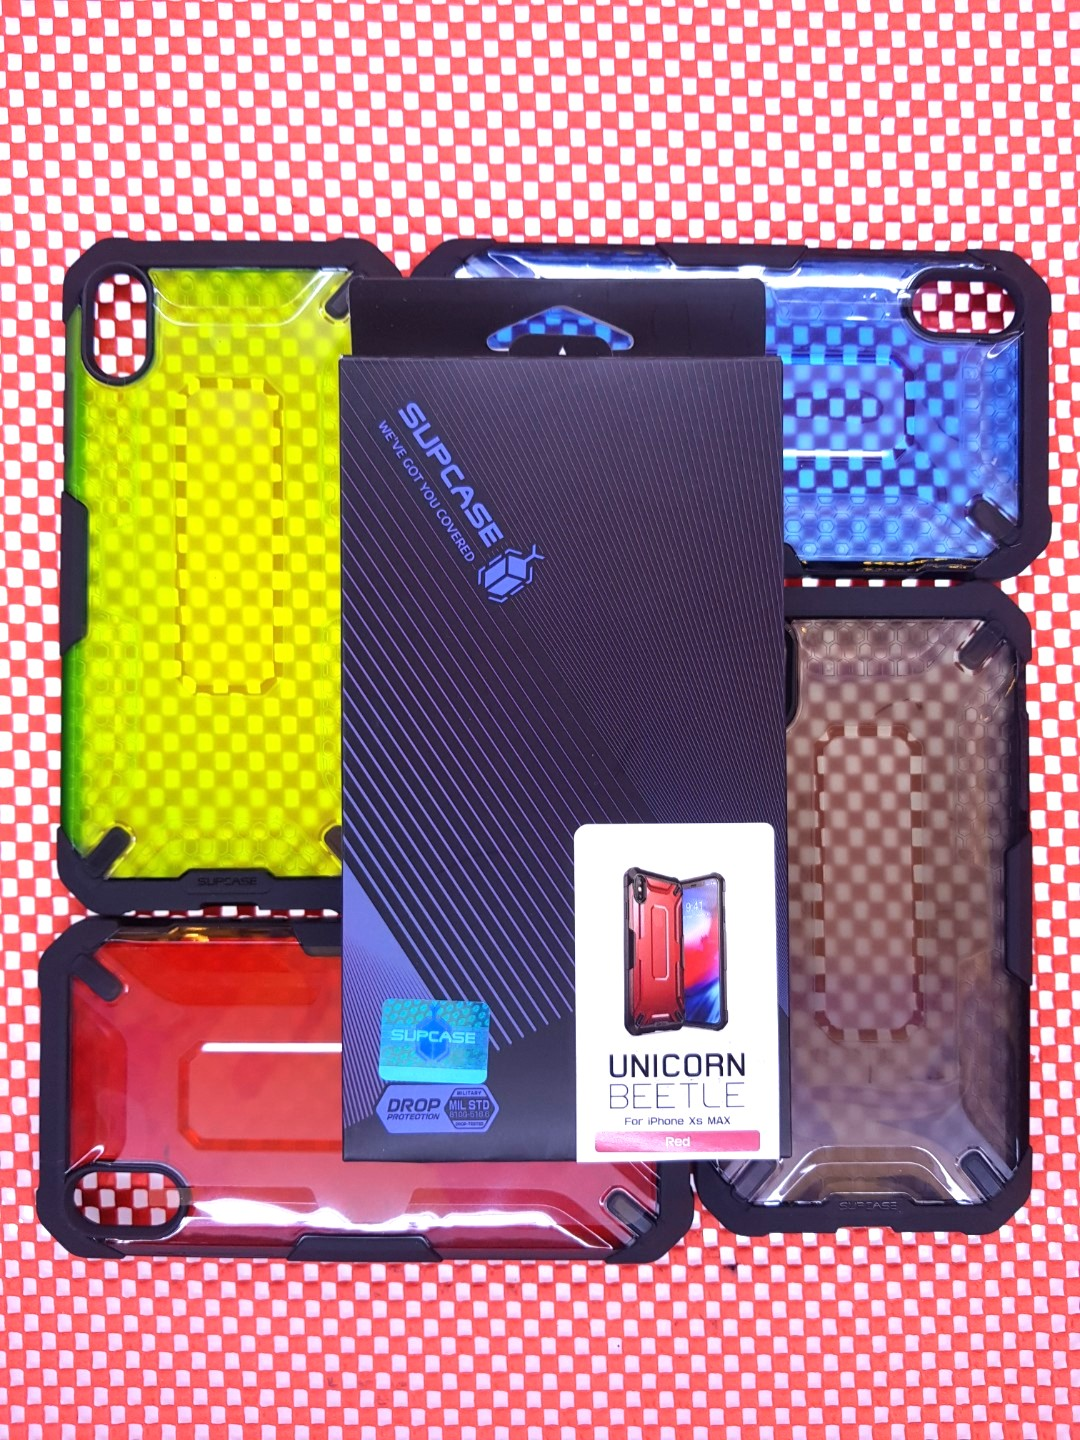 buy online 472d4 c1604 Supcase Unicorn Beetle for iPhone XR / XS MAX